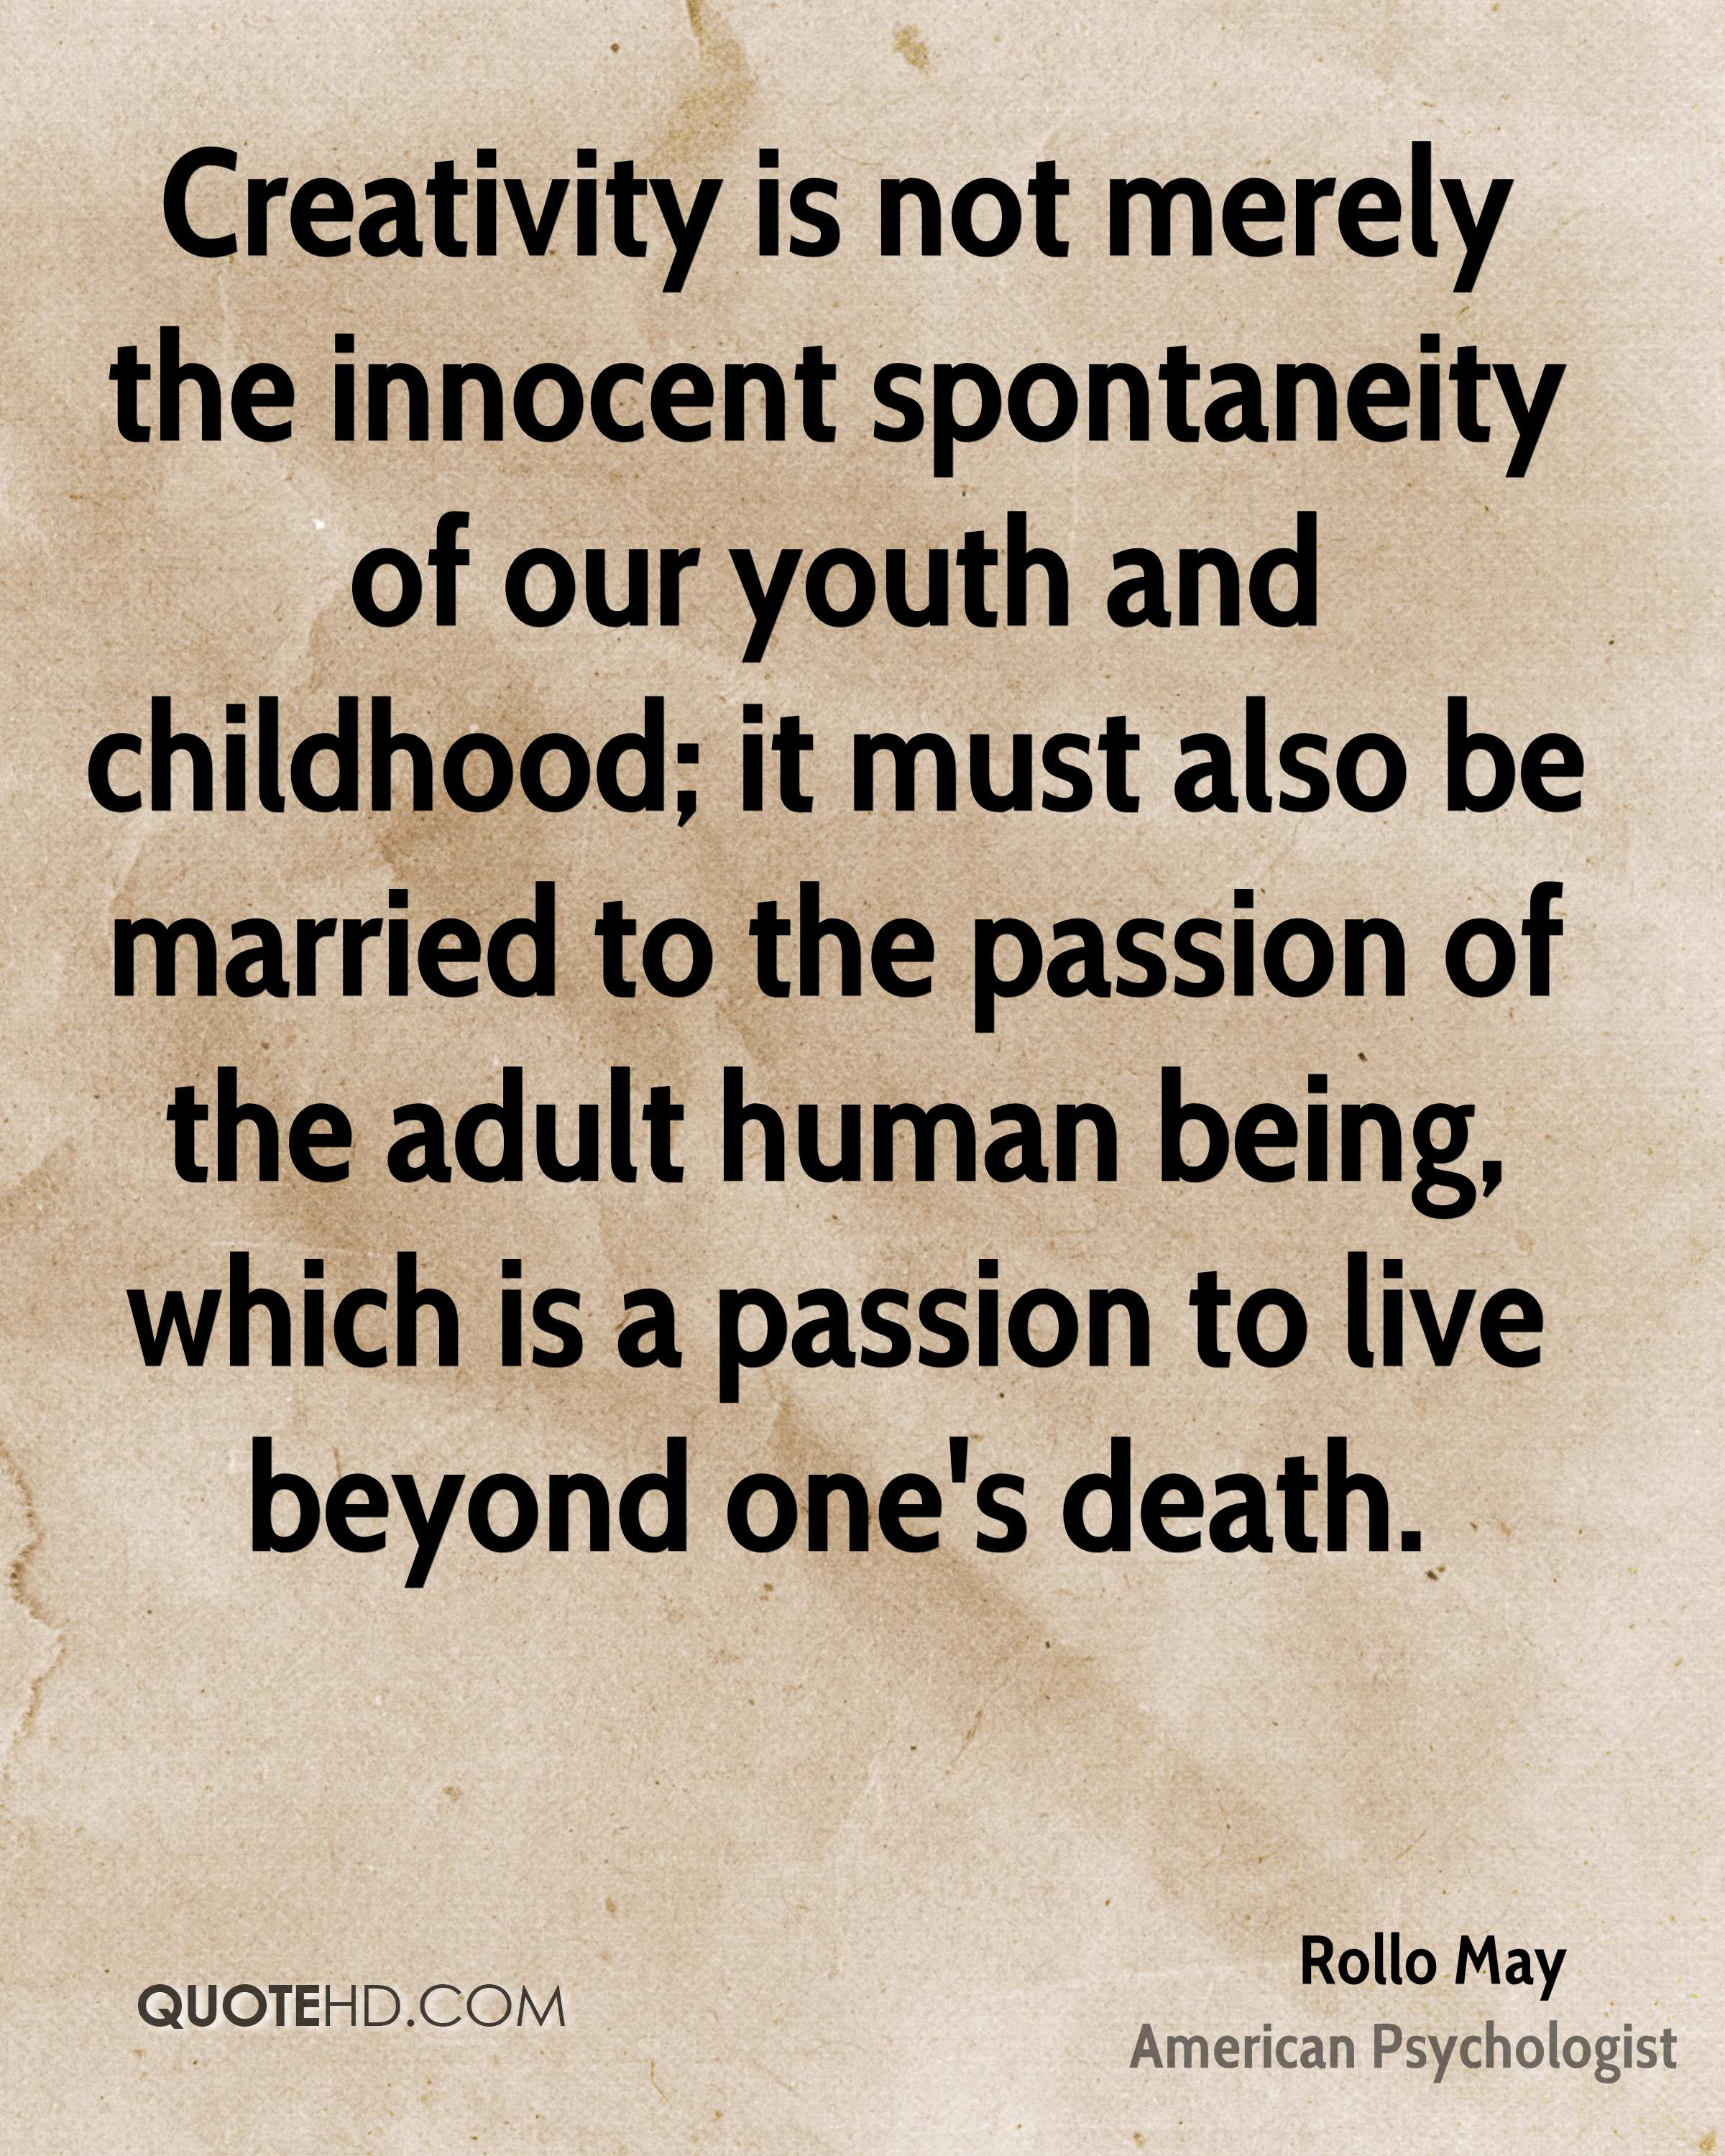 Creativity is not merely the innocent spontaneity of our youth and childhood; it must also be married to the passion of the adult human being, which is a passion to live beyond one's death.